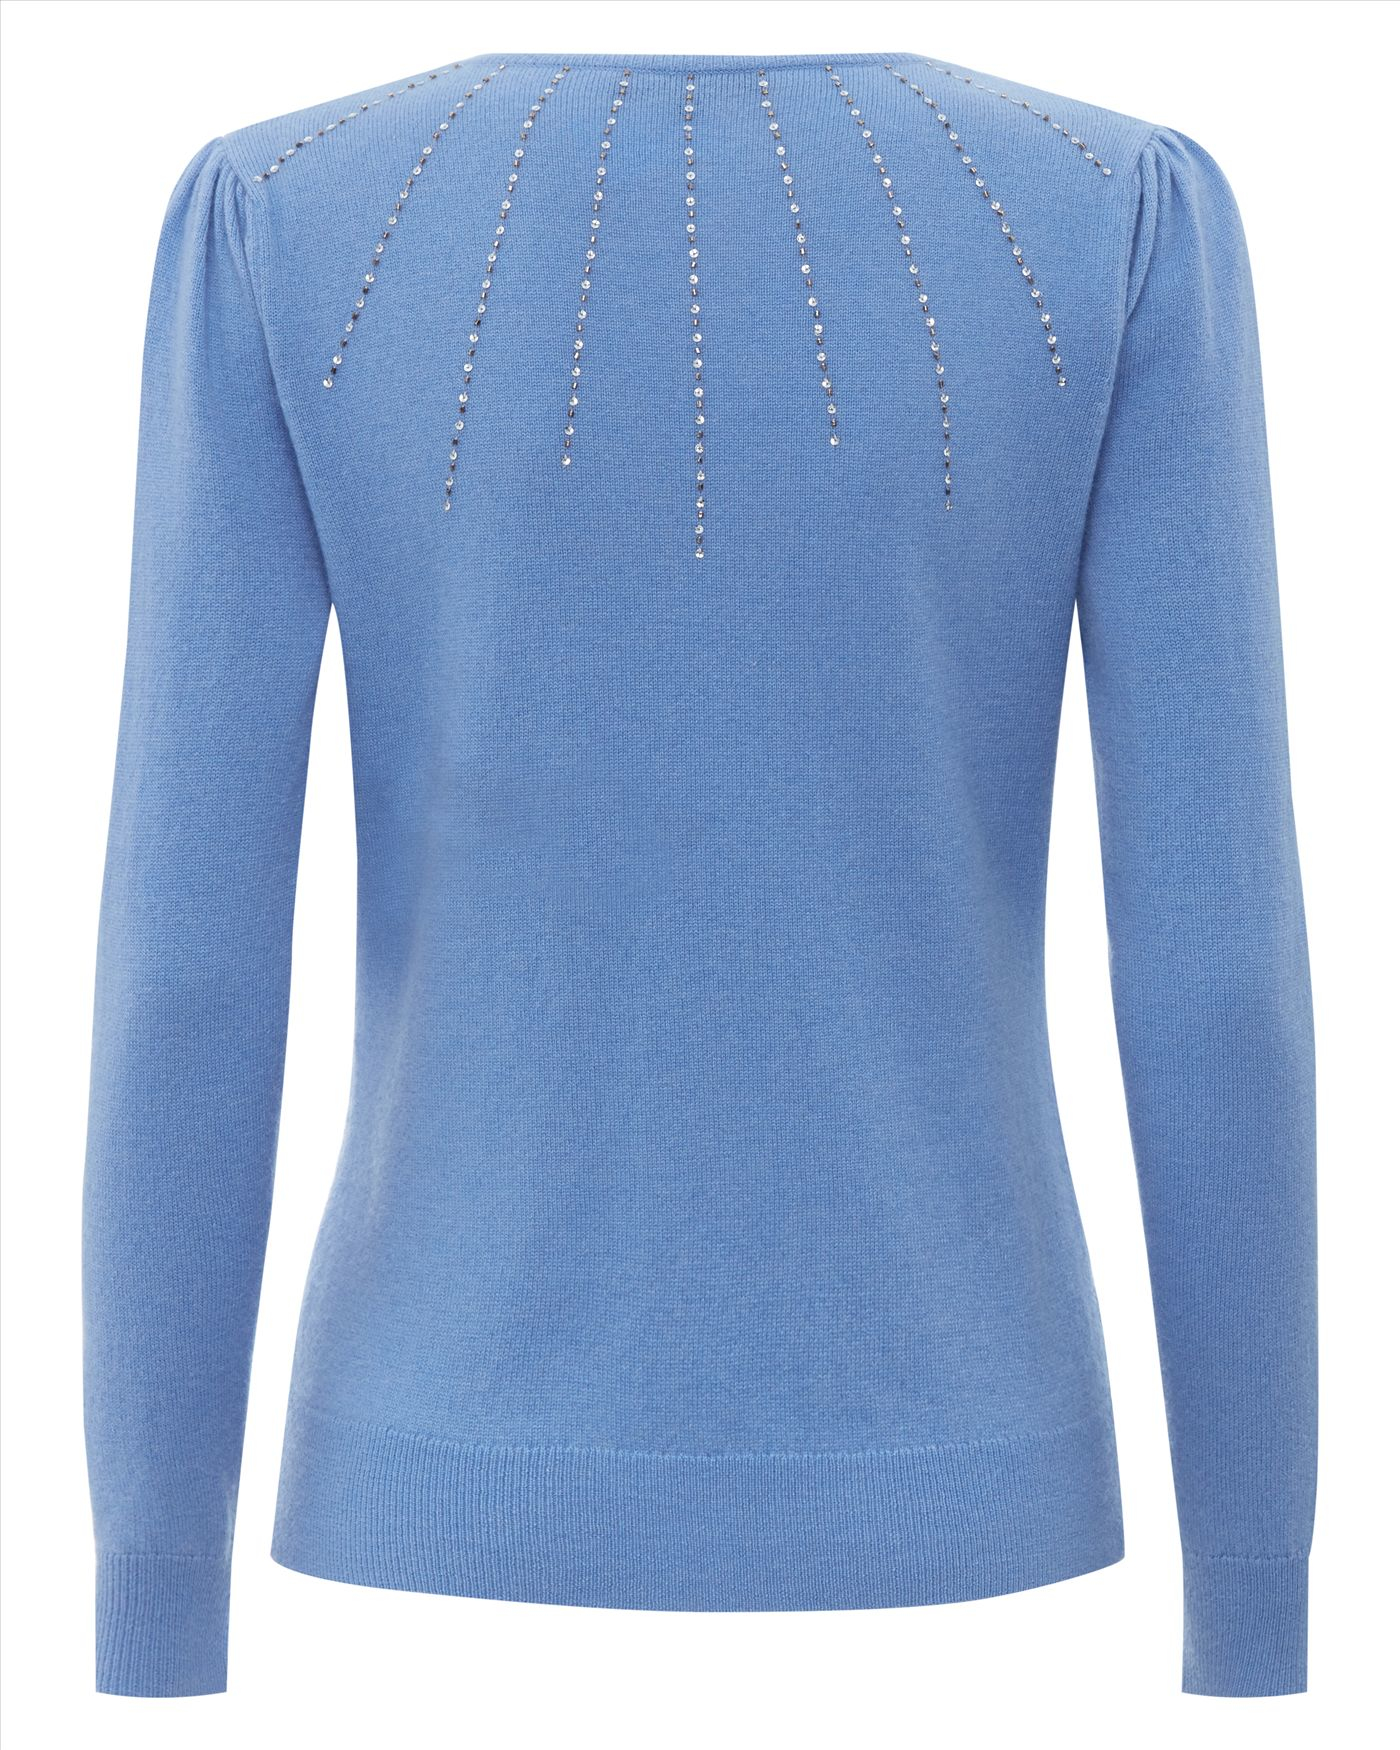 Free shipping and returns on Women's Blue Sweaters at evildownloadersuper74k.ga